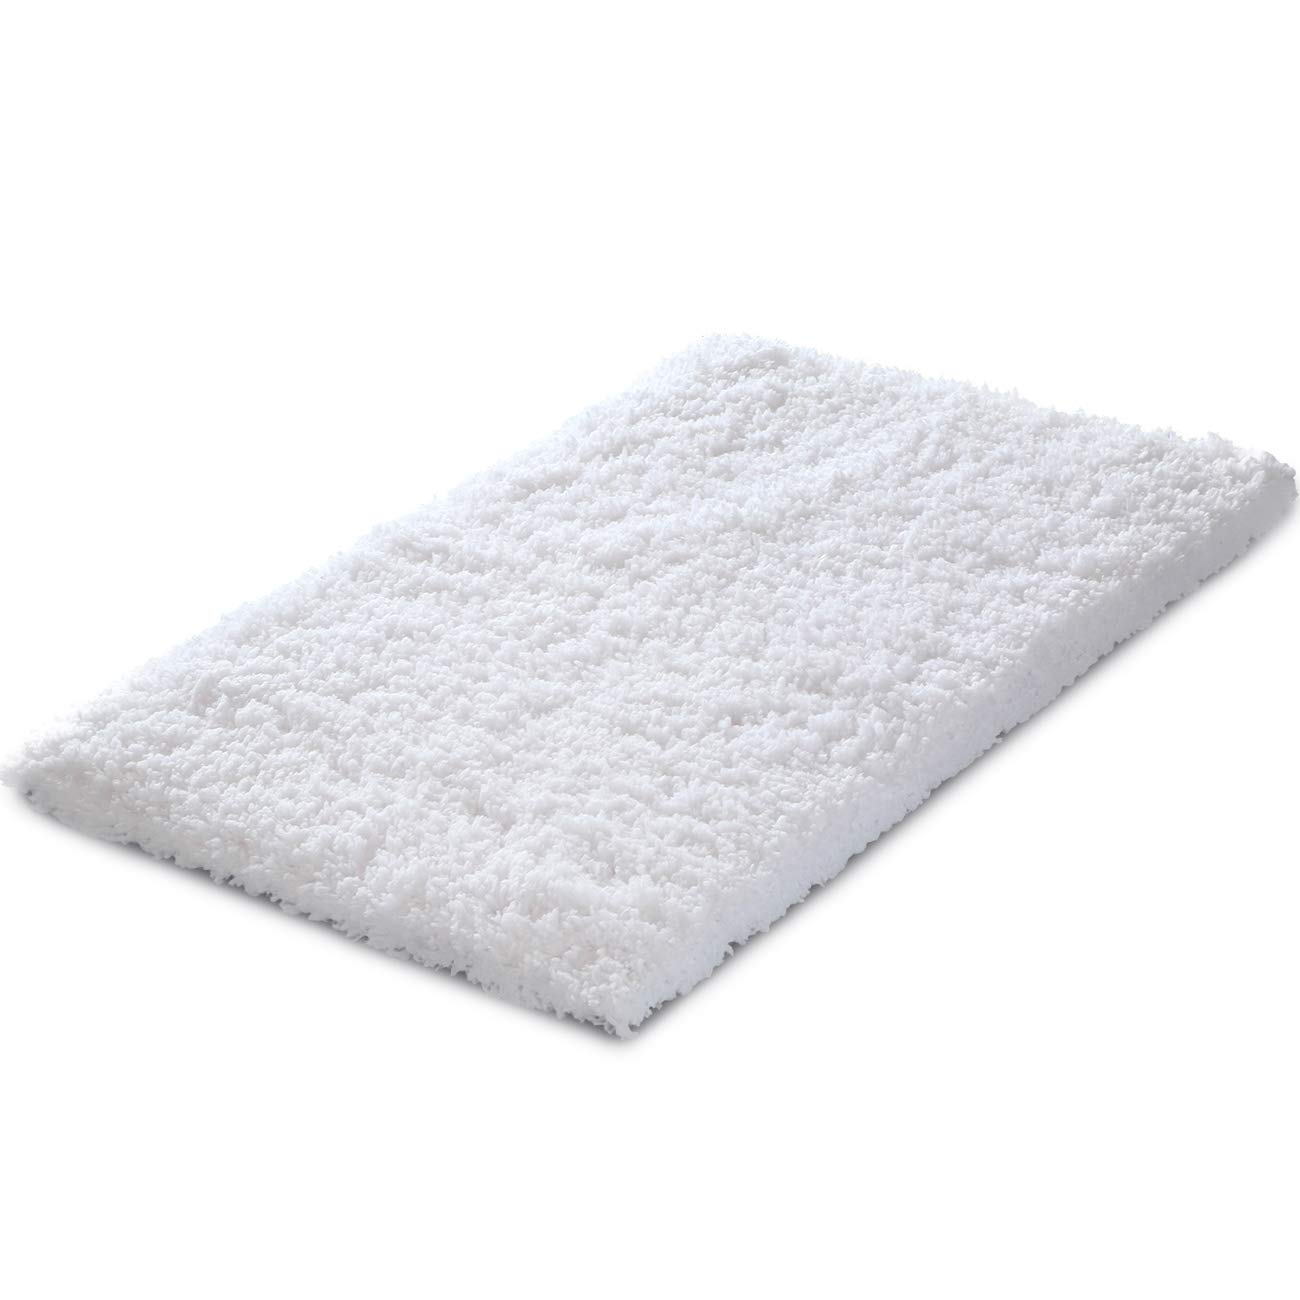 KMAT Bath Mat 31 x 19 White Soft Plush Non Slip Absorbent Microfiber Bathroom and Shower Rugs Luxury Machine Washable Doormat Floor Mat for Bathroom Bathtub Bedroom Living Room Home Hotel